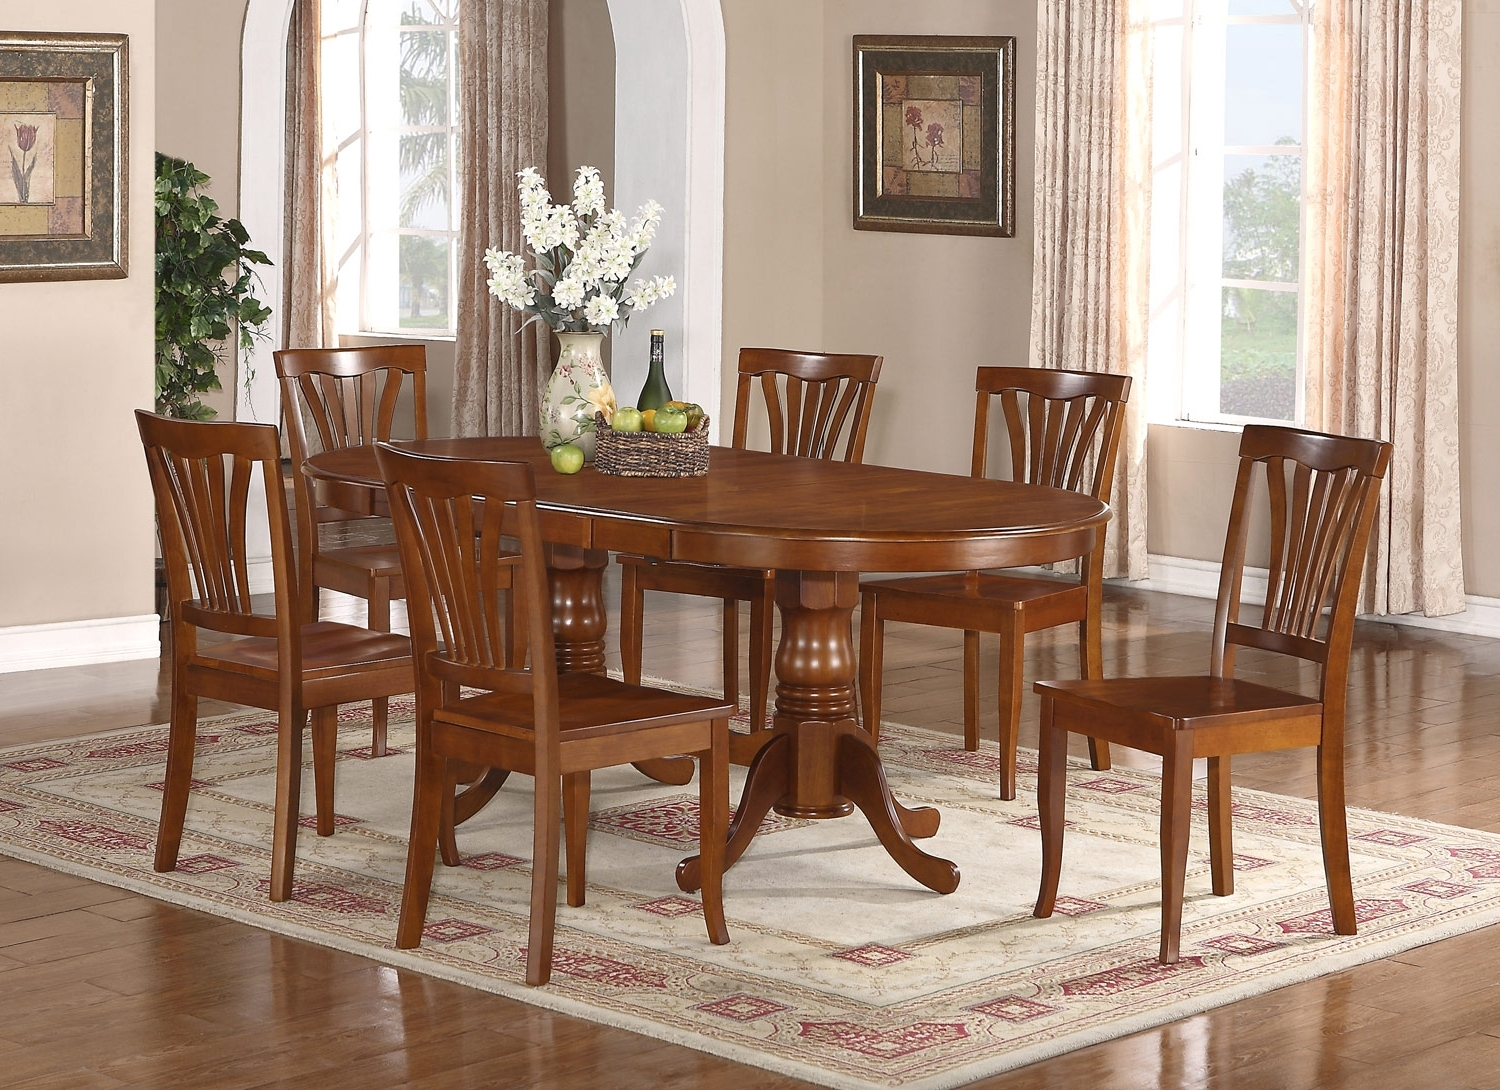 7Pc Oval Newton Dining Room Set Extension Leaf Table 6 Chairs 42 With Regard To Most Current 6 Chairs Dining Tables (View 5 of 25)